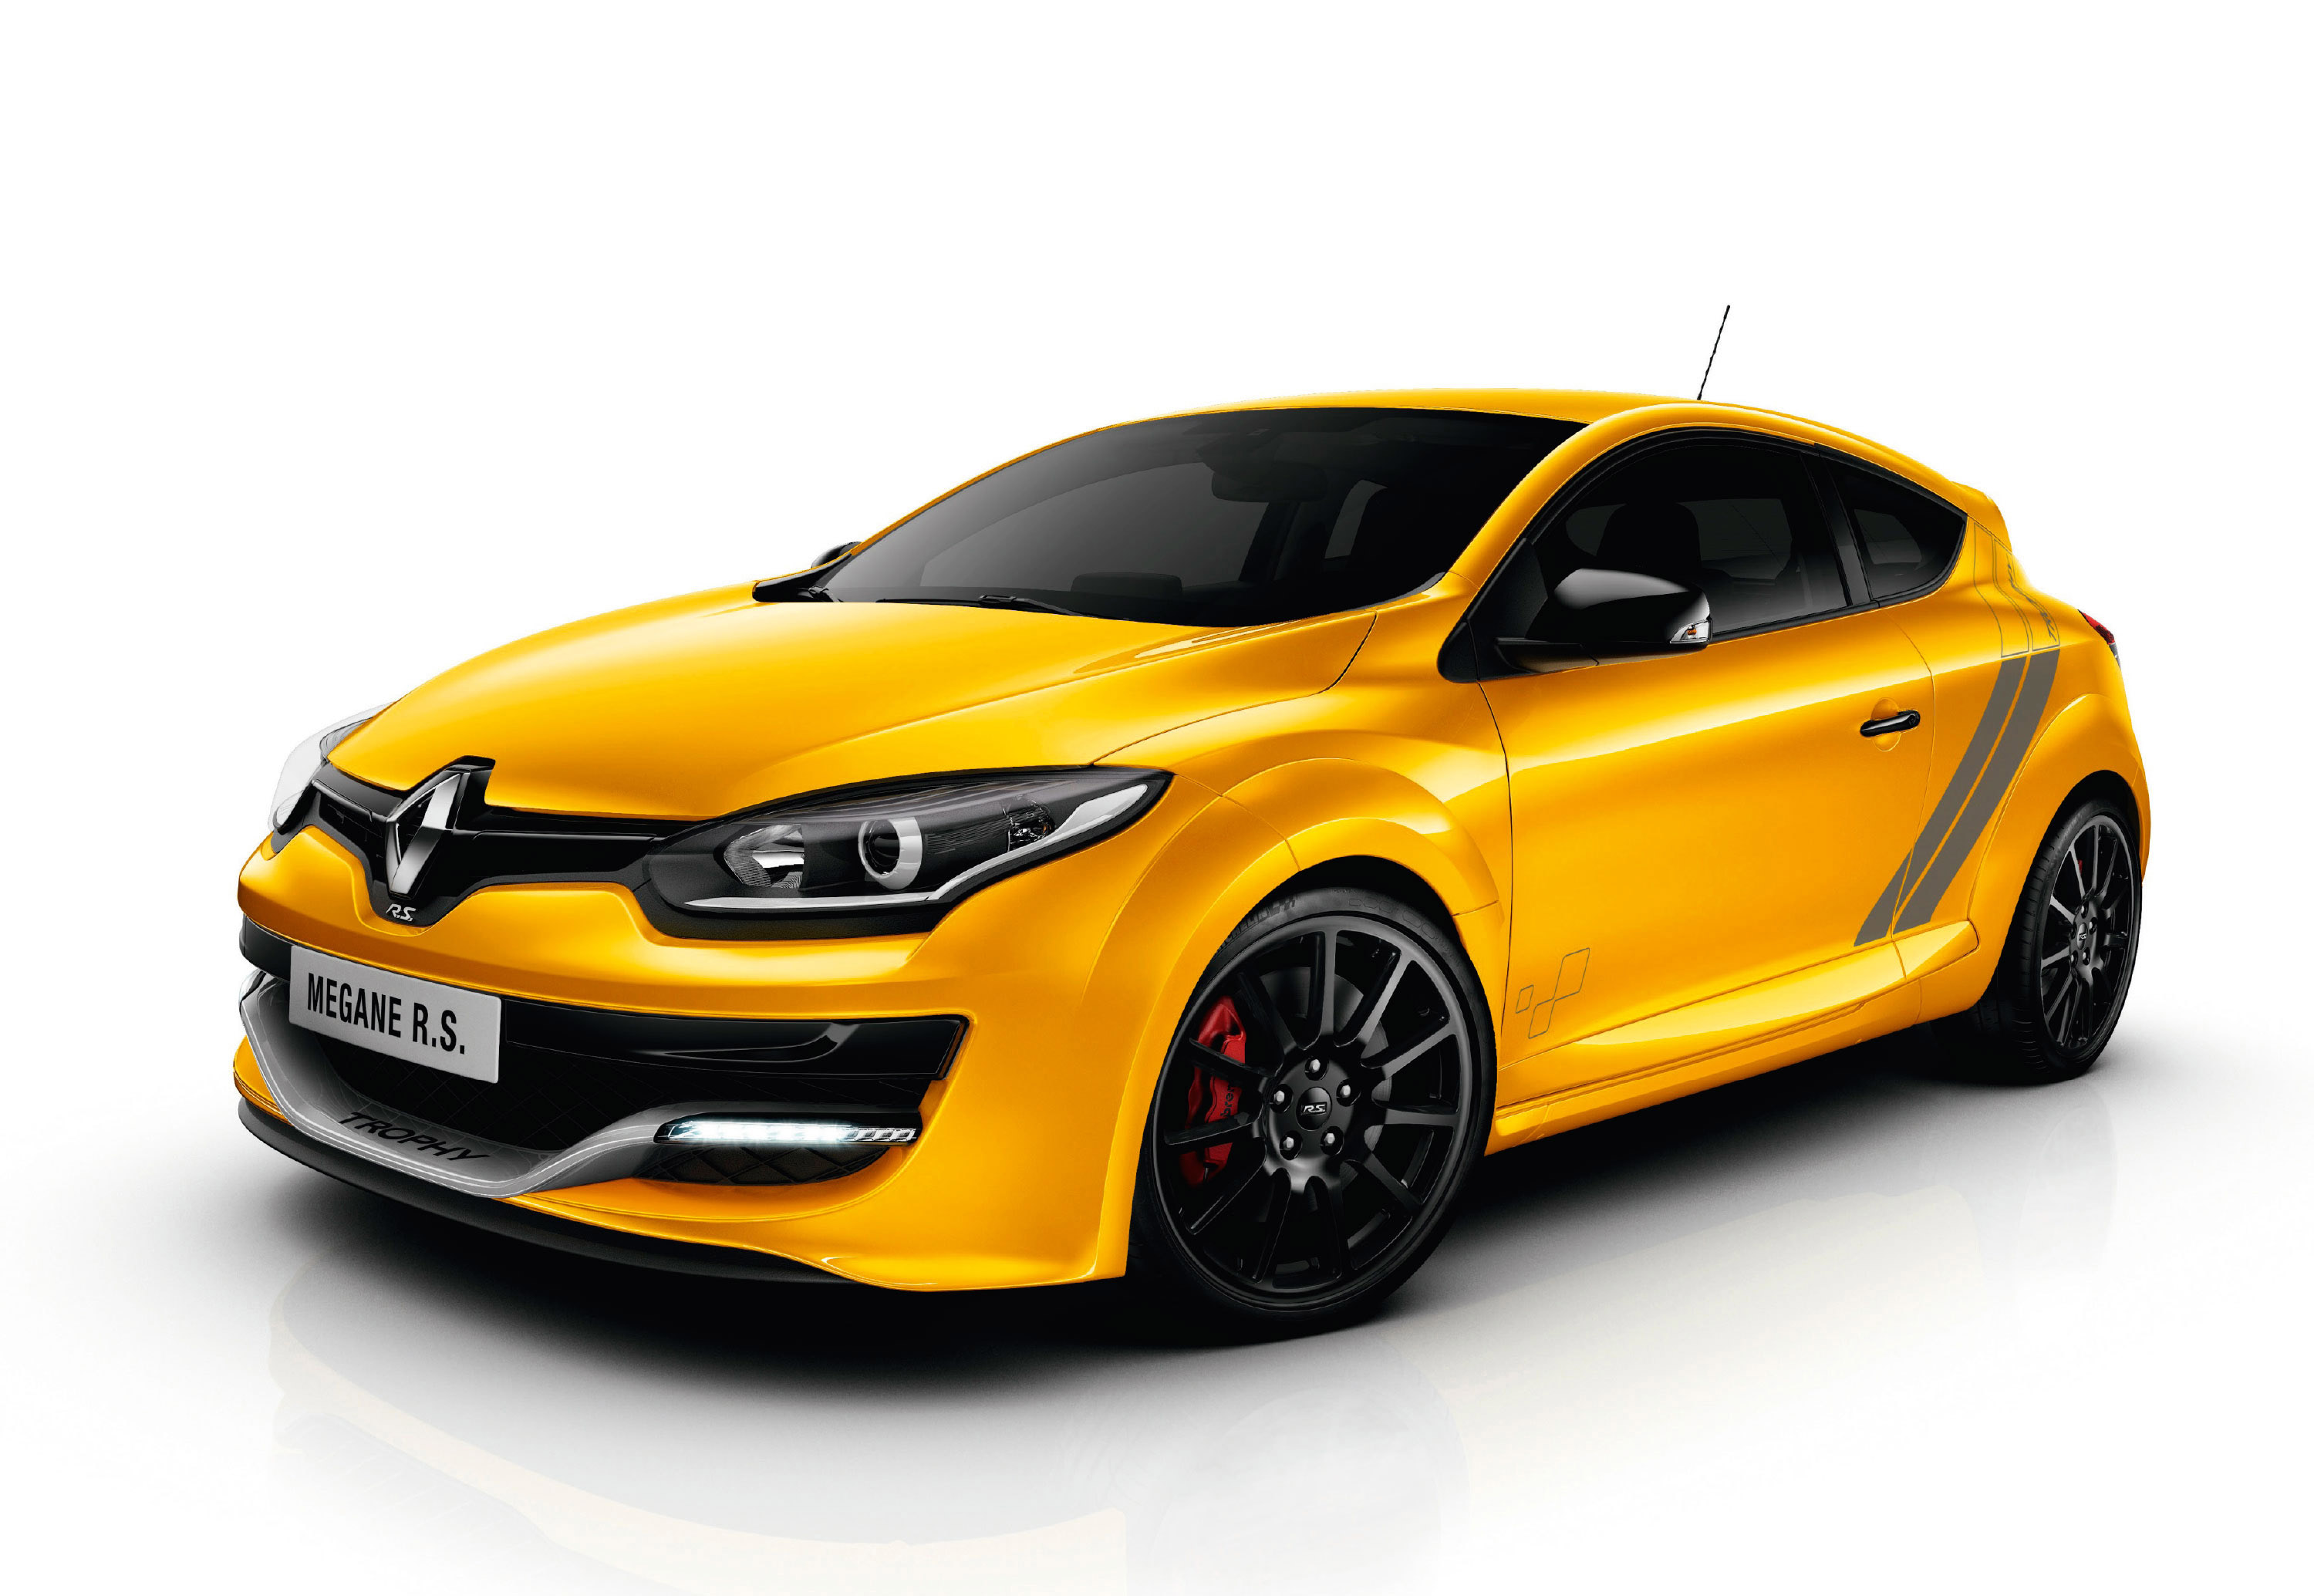 Very Best 2014 Renault Megane RS 275 Trophy, 1 of 9 3000 x 2069 · 558 kB · jpeg